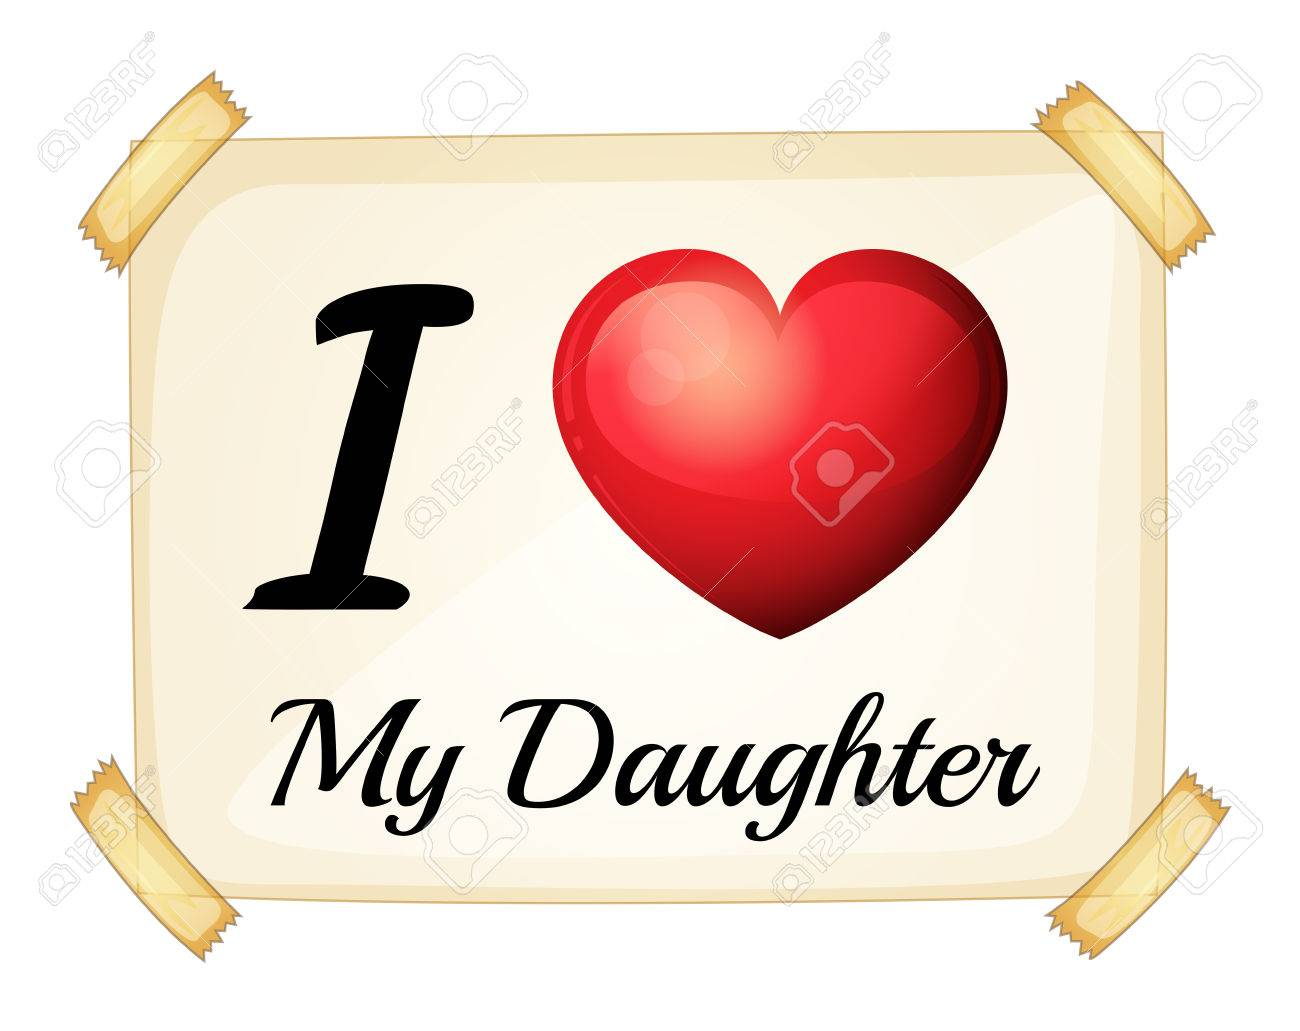 I Love My Daughter Posted On The Wall Royalty Free Cliparts Vectors